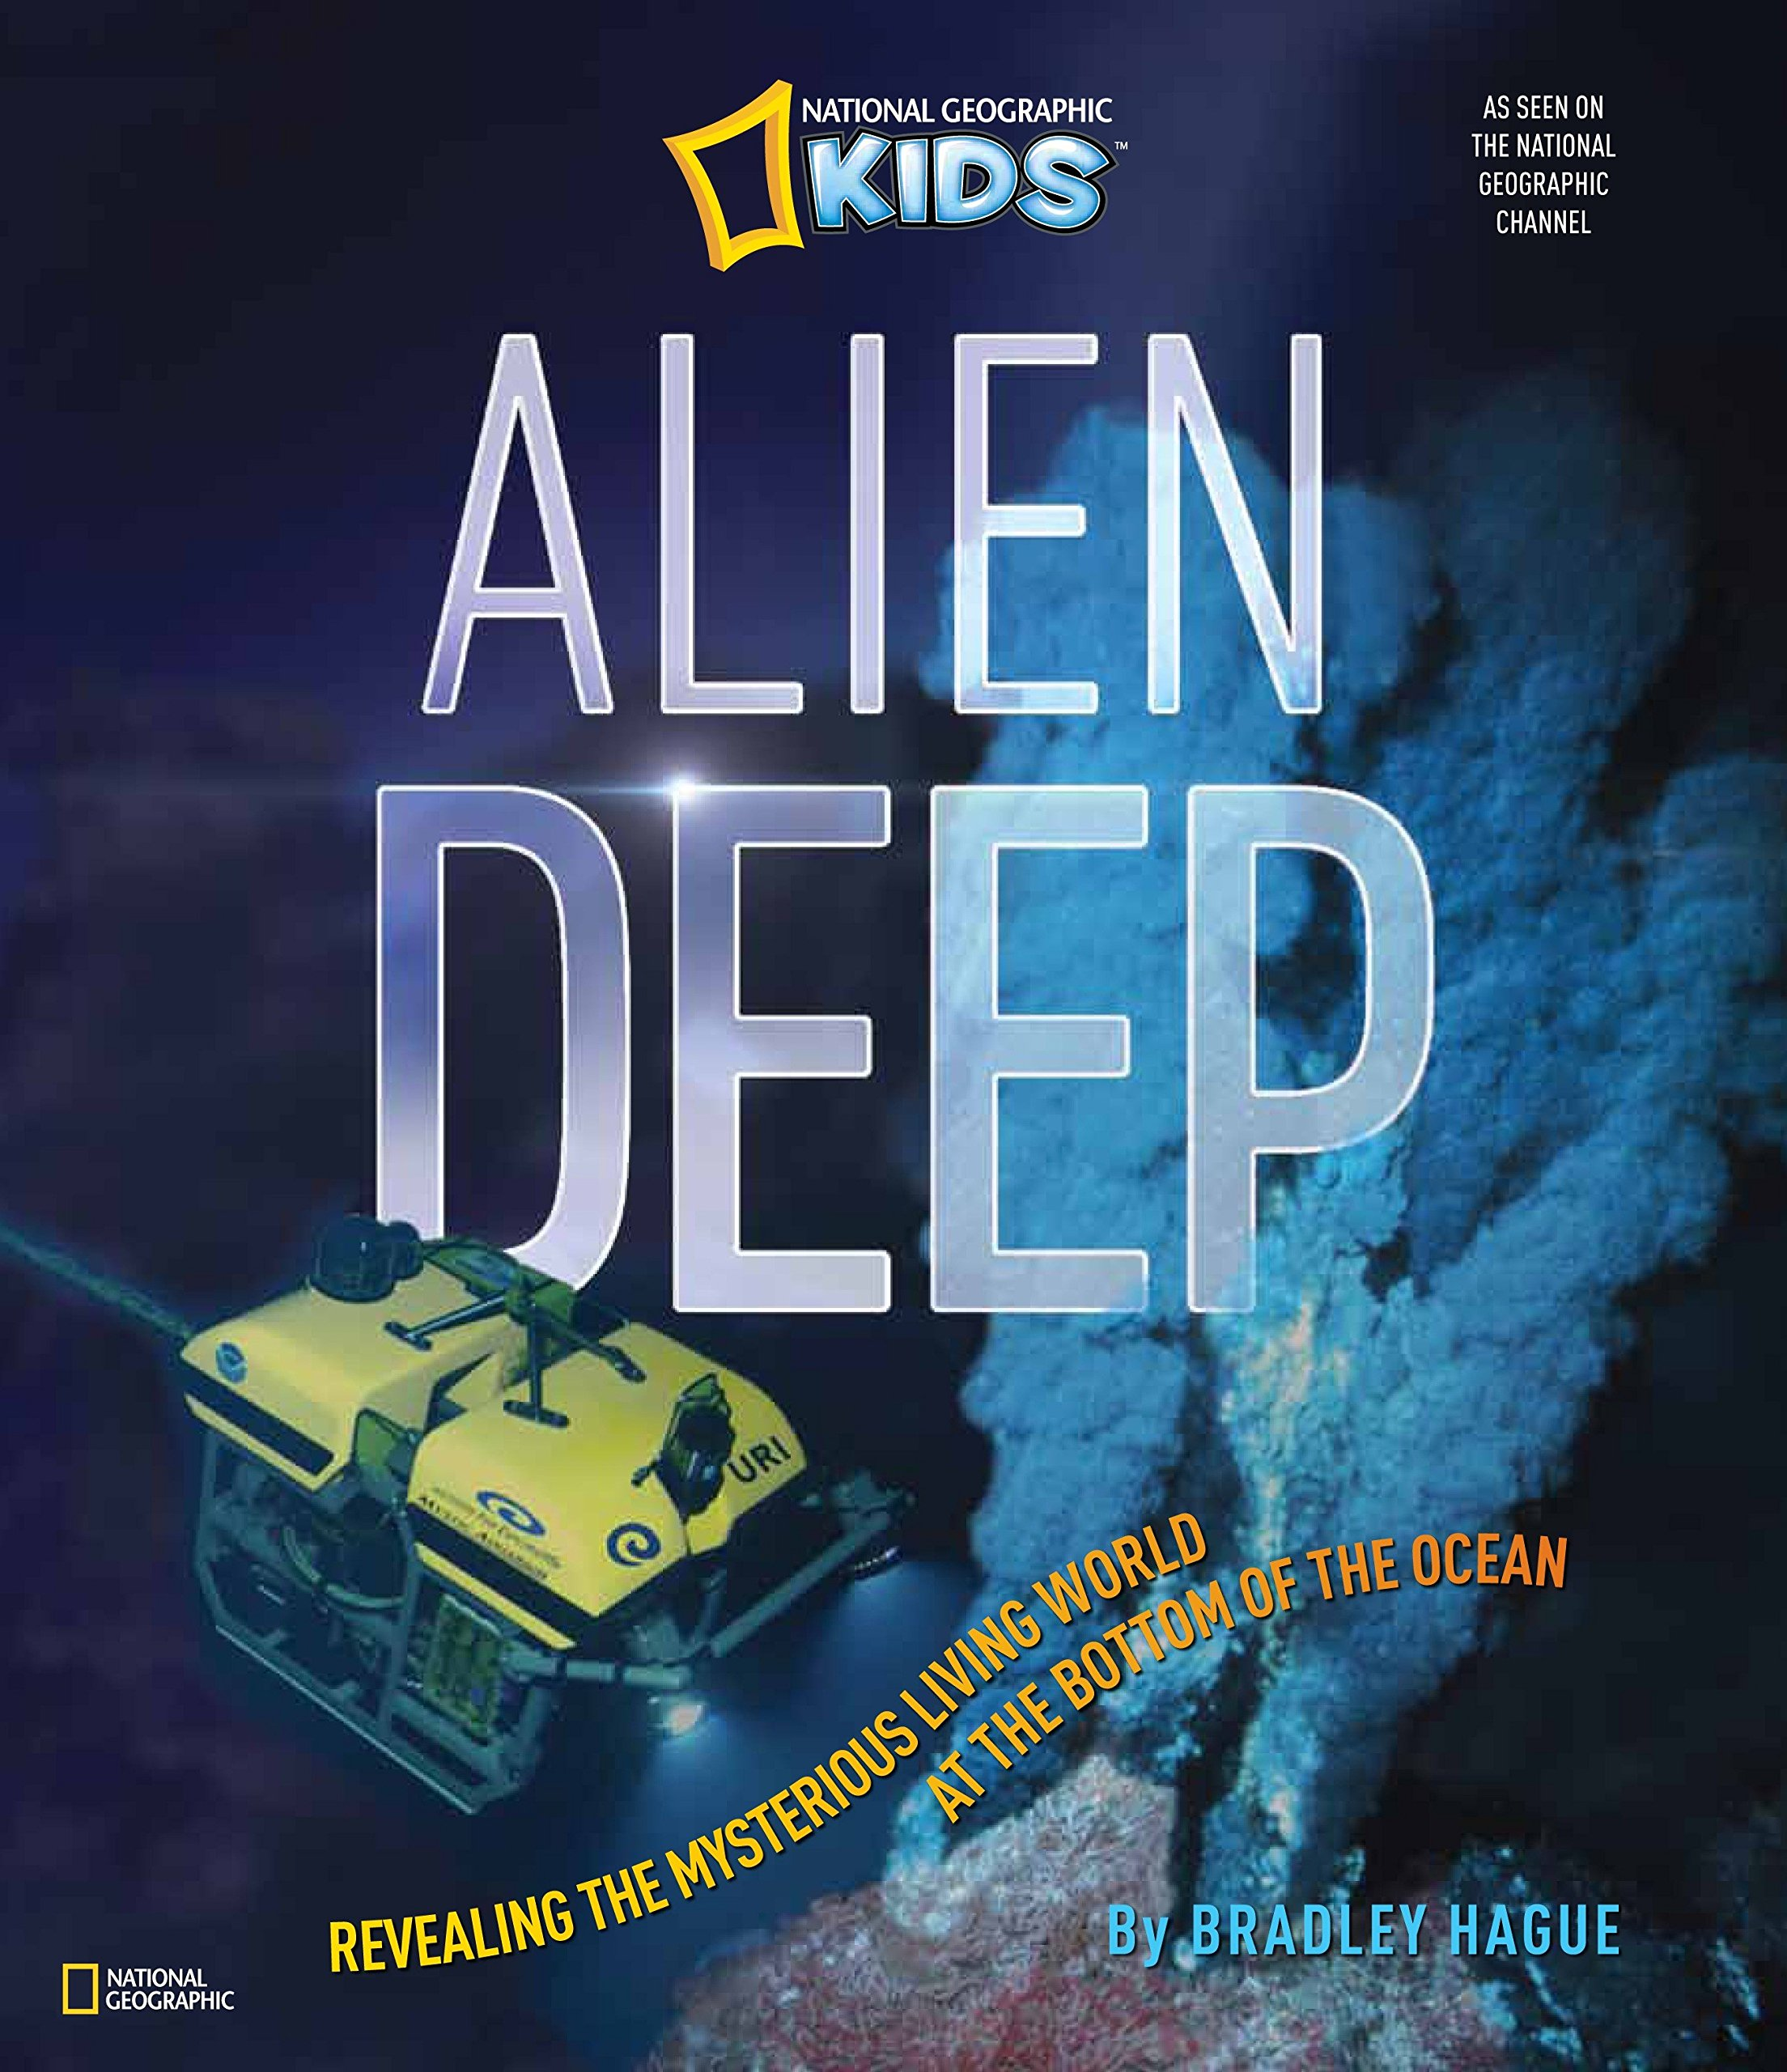 Alien Deep: Revealing the Mysterious Living World at the Bottom of the Ocean (National Geographic Kids) by Brand: National Geographic Children's Books (Image #1)